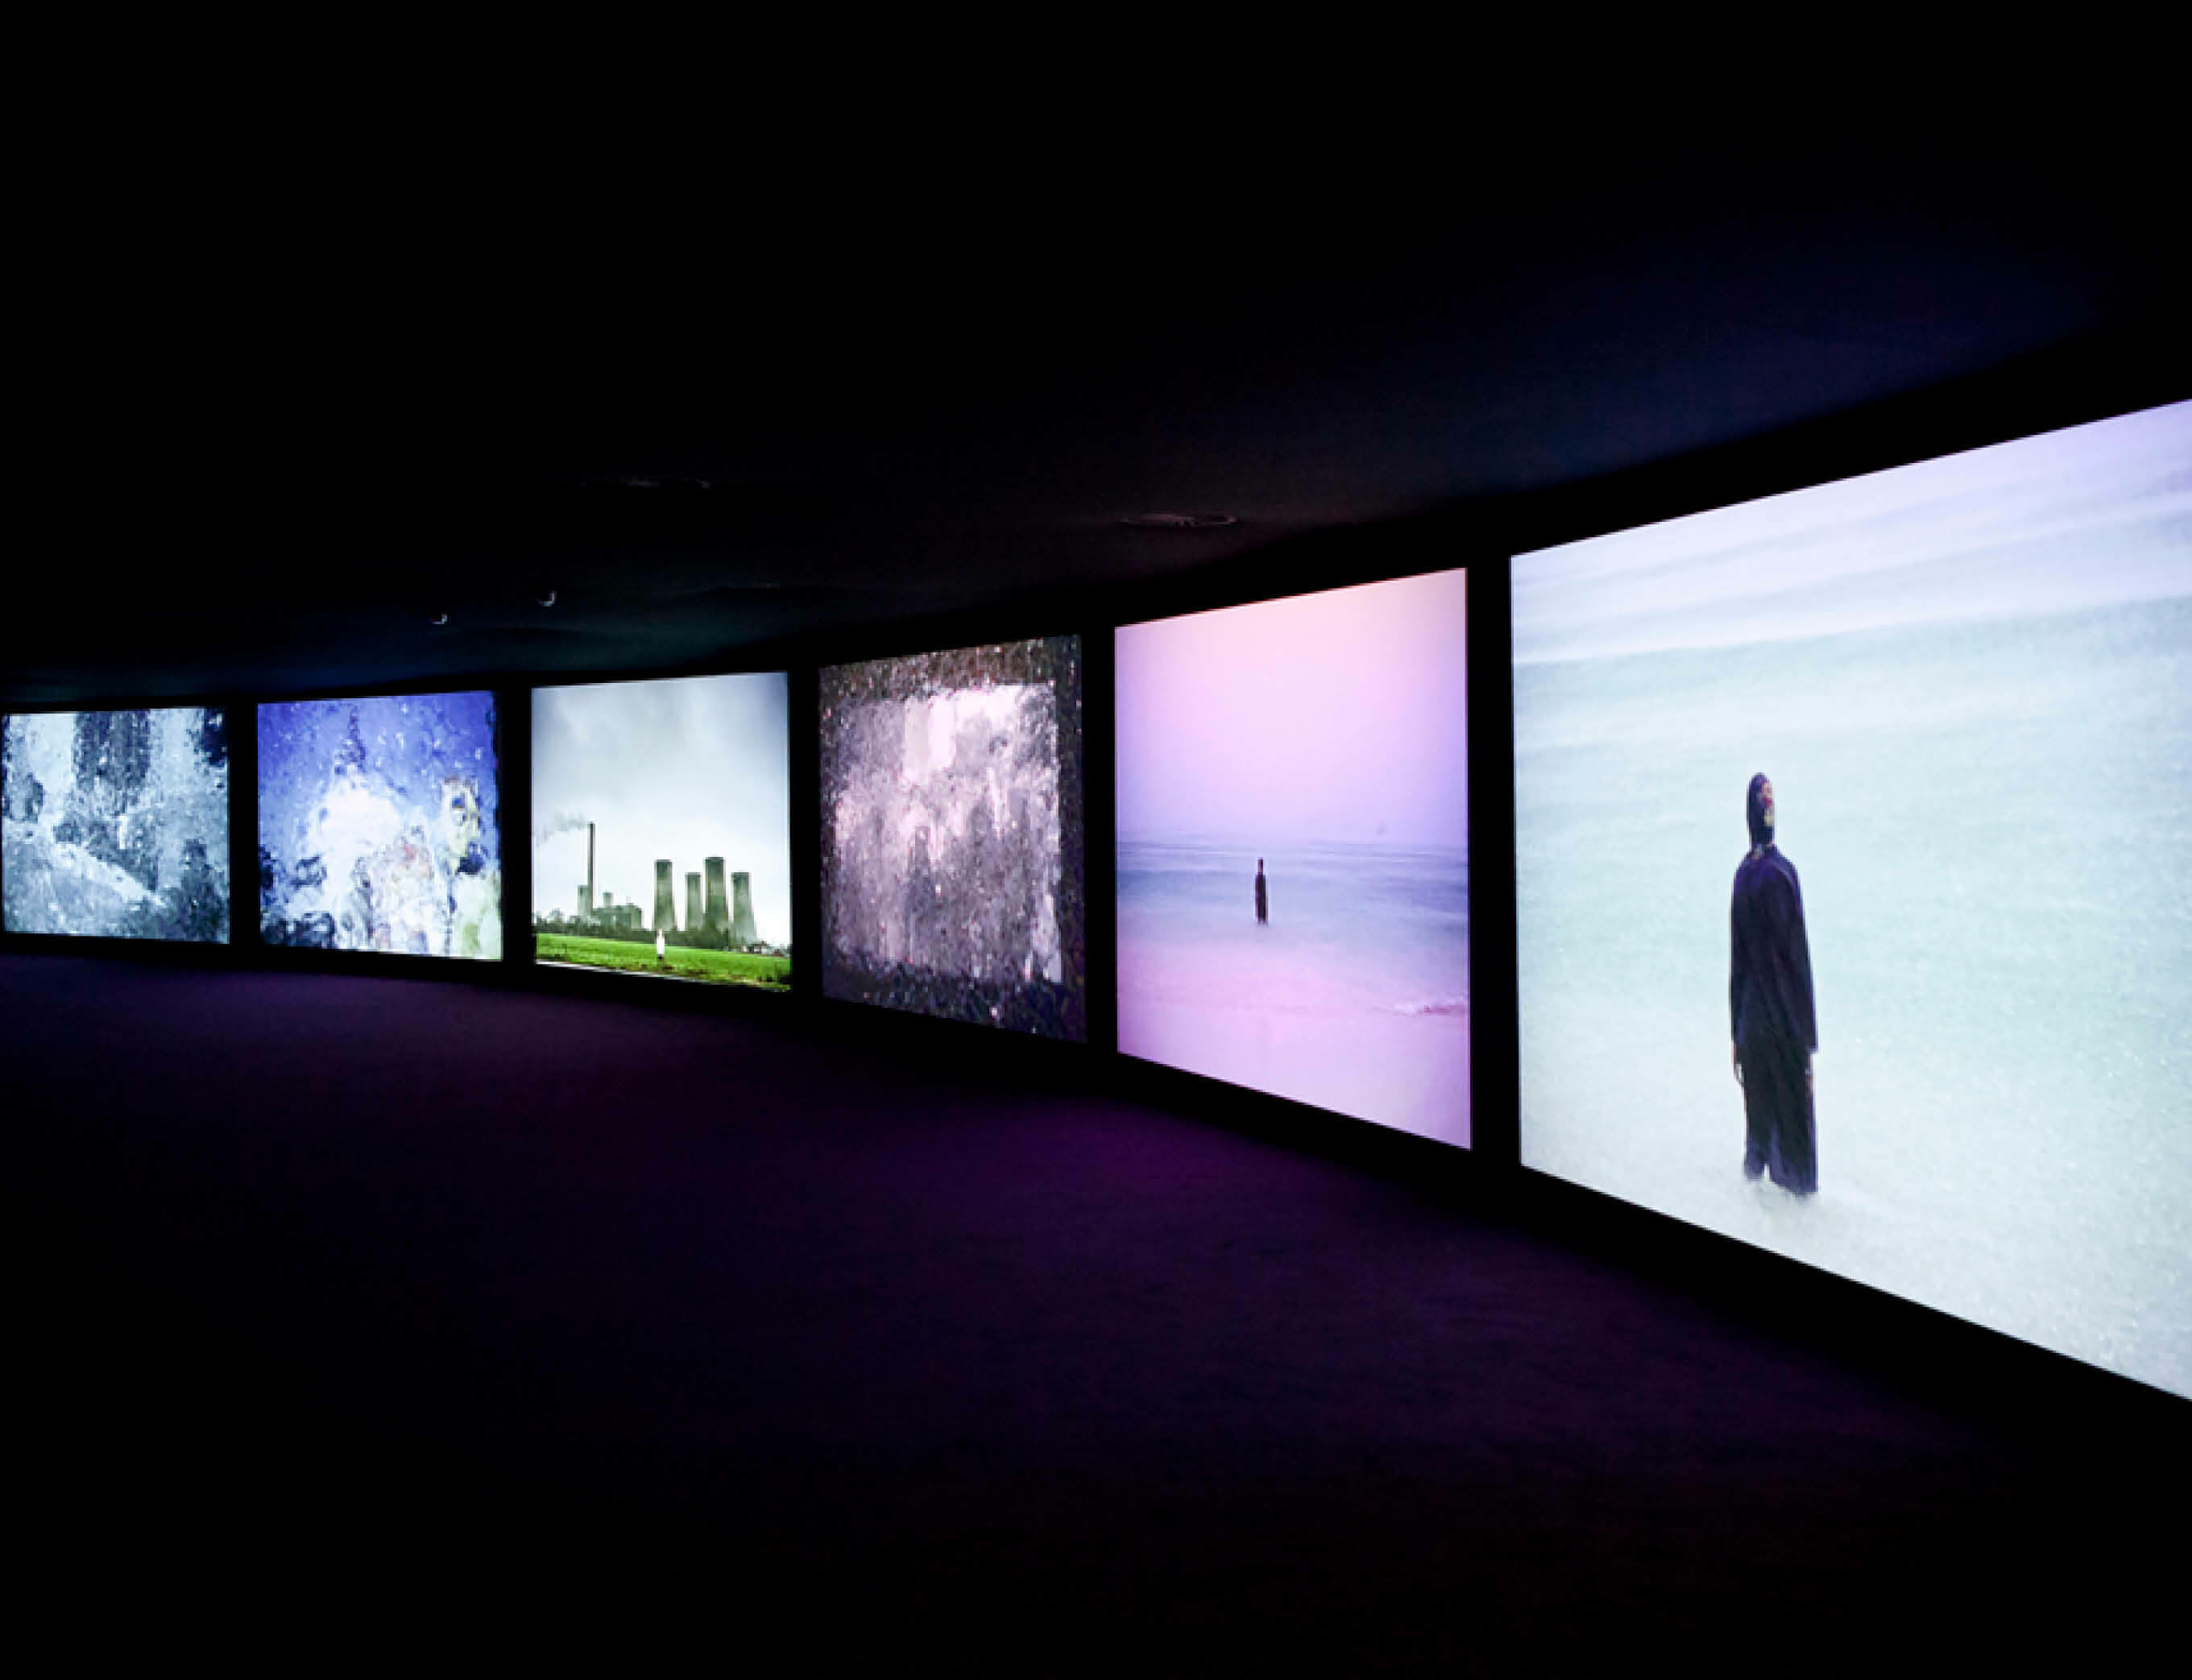 Bildmuseet follows its presentation of Akomfrah's 'Vertigo Sea' with its sequel